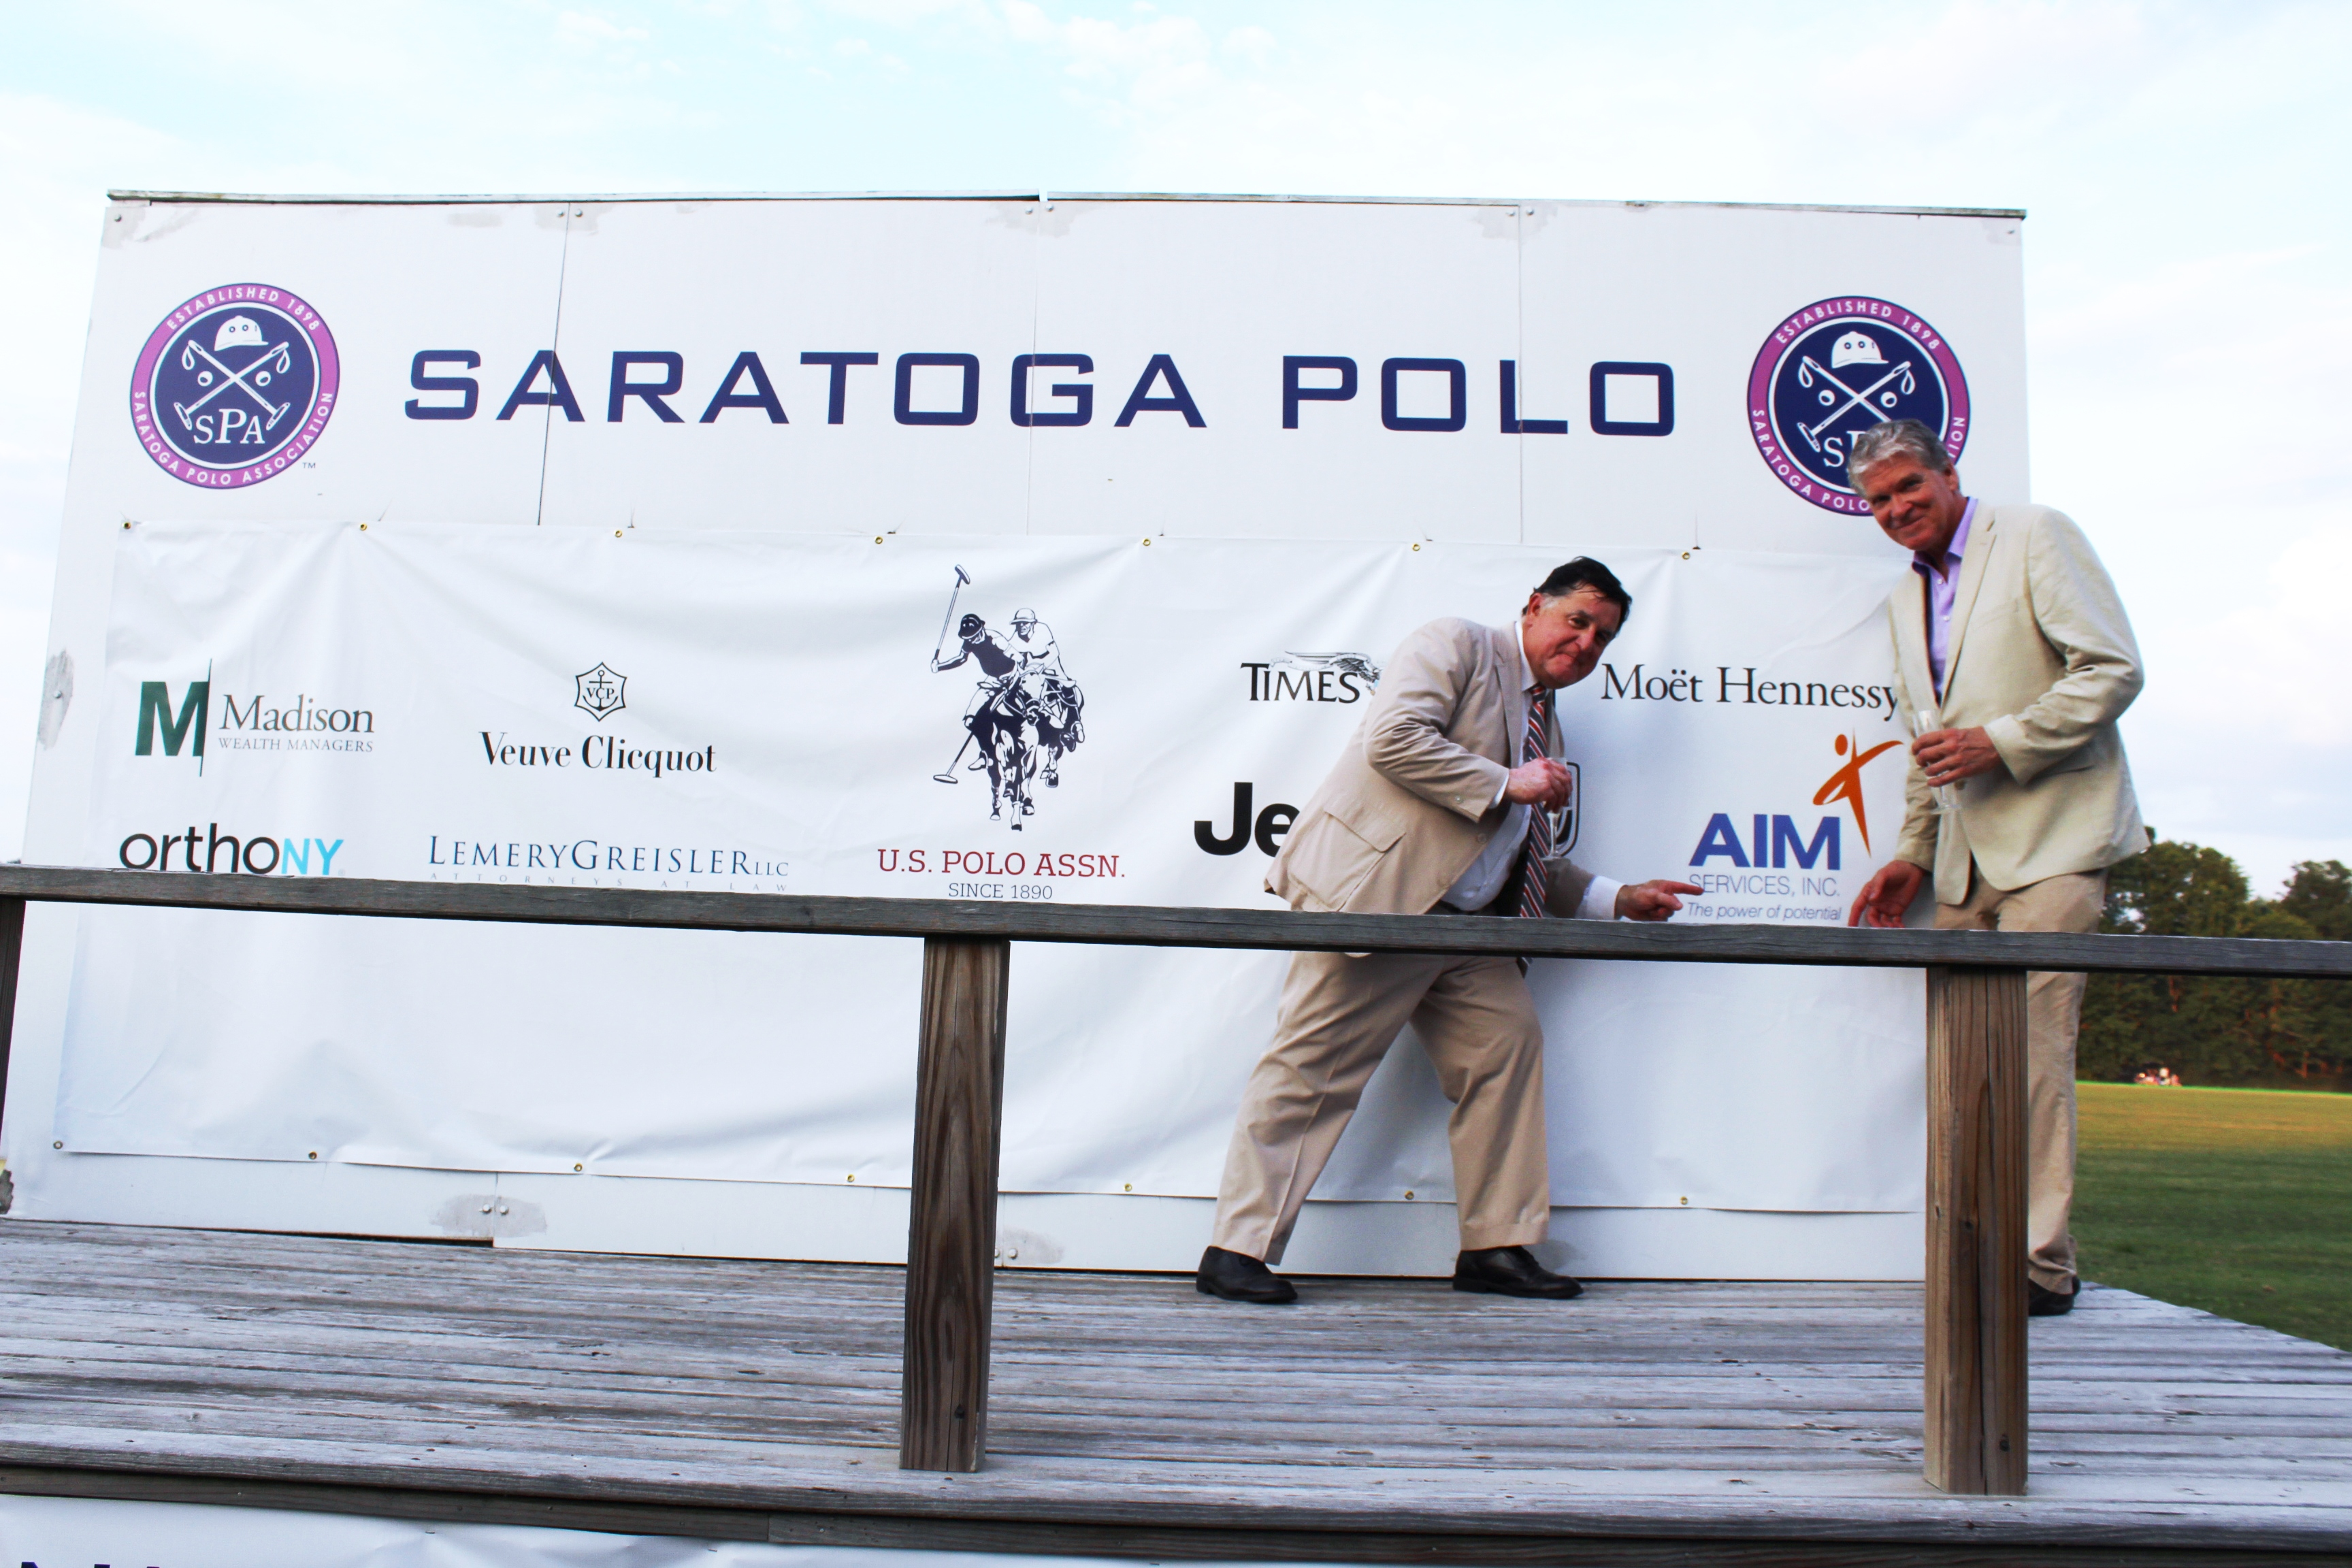 Chris Lyons and Walt Adams pointing at AIM logo at the Saratoga Dog & Pony Show to benefit AIM Services, Inc.